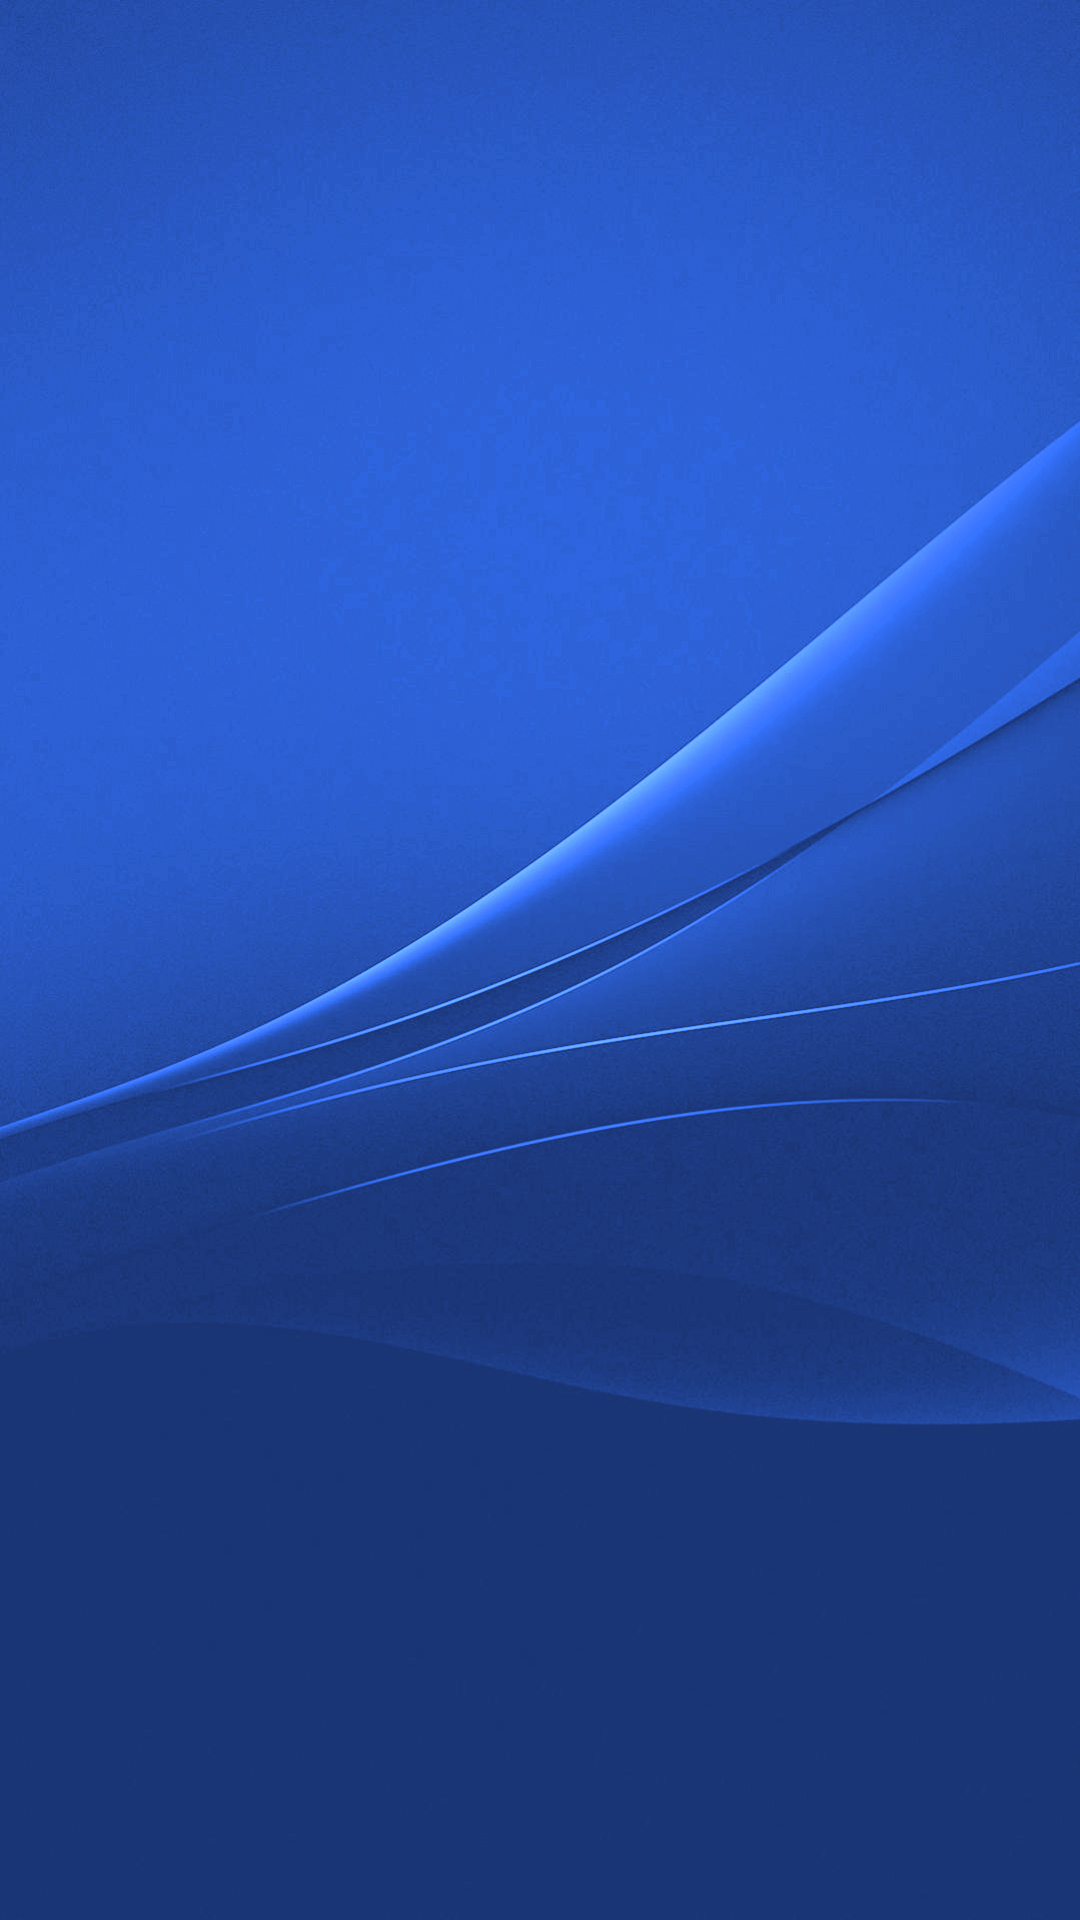 blue xperia lollipop experience flow wallpaper